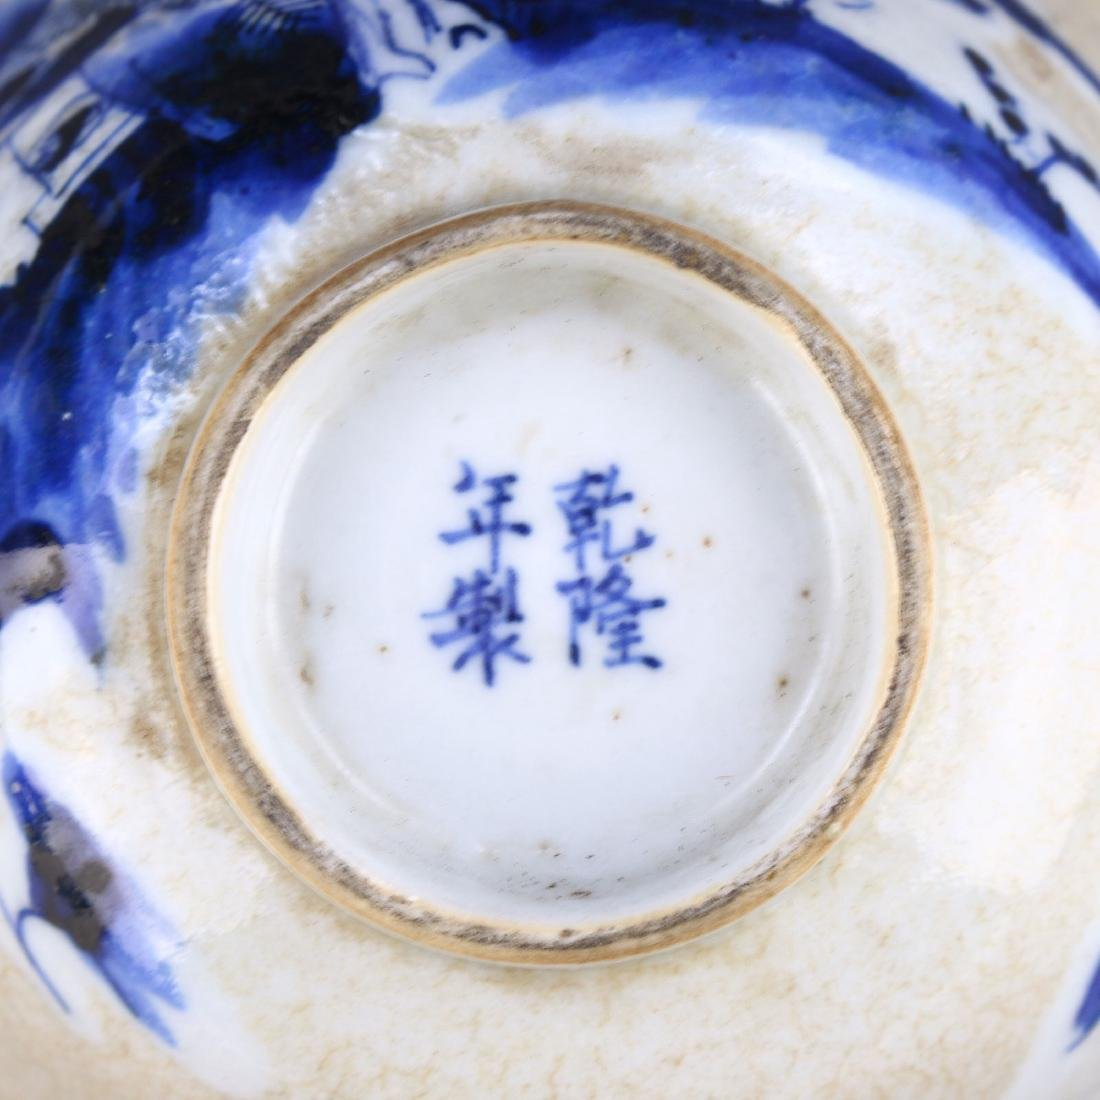 A CHINESE ANTIQUE BLUE & WHITE LIDDED PORCELAIN TUREEN - 7